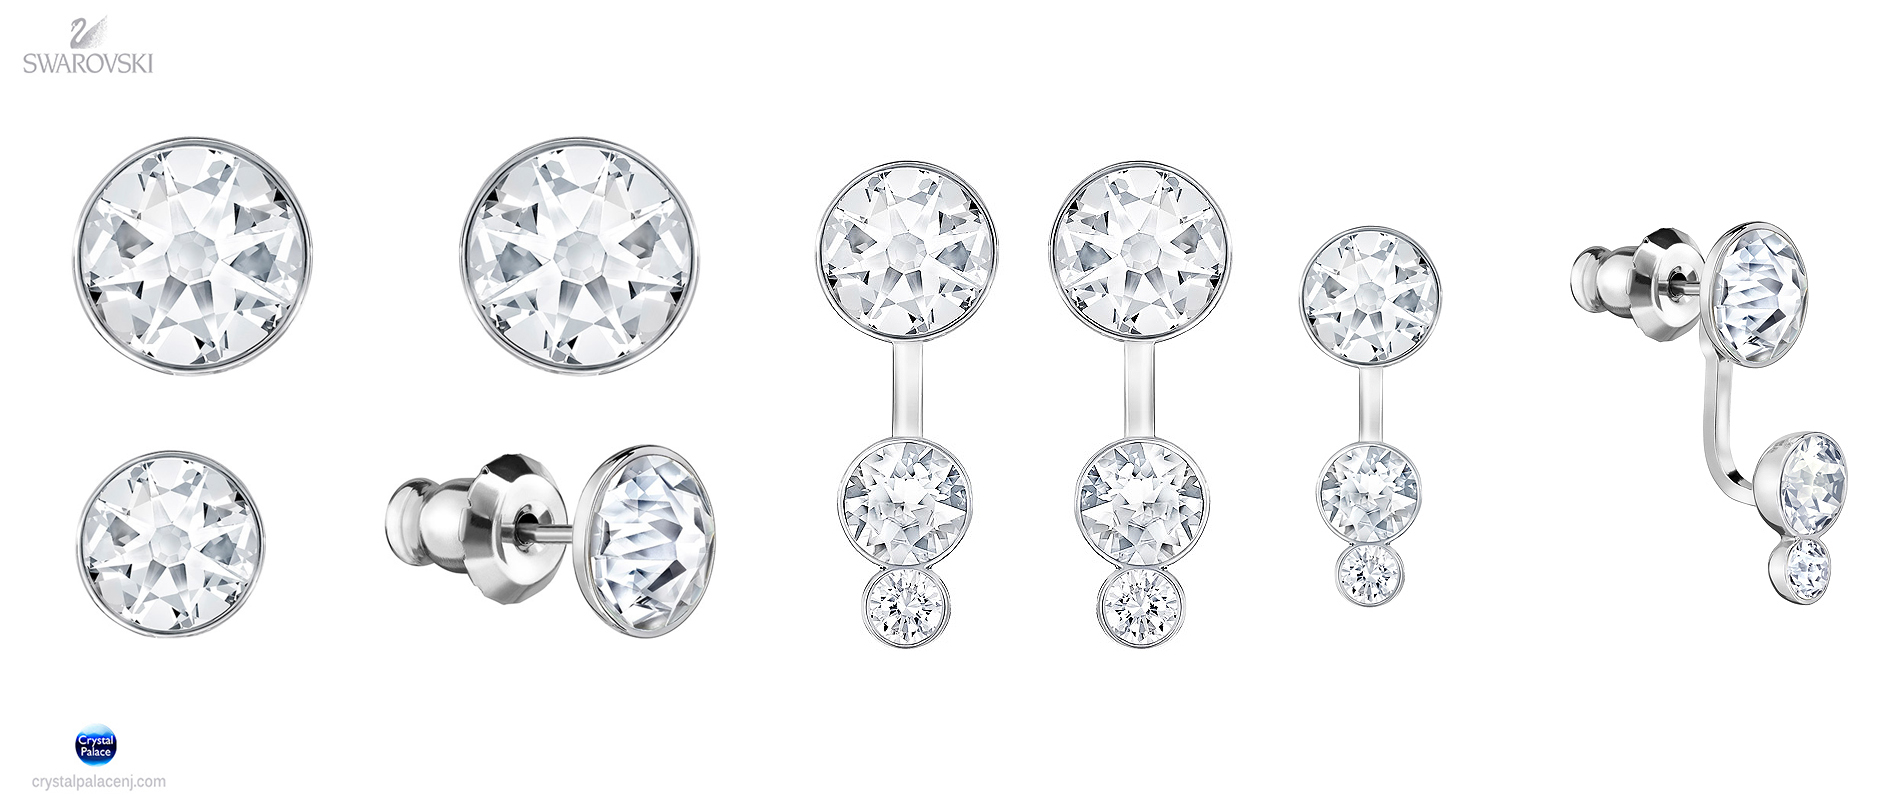 92406d730b91d 5201104 Swarovski Jewelry Slake Dot Pierced Earring Jackets rhodium ...